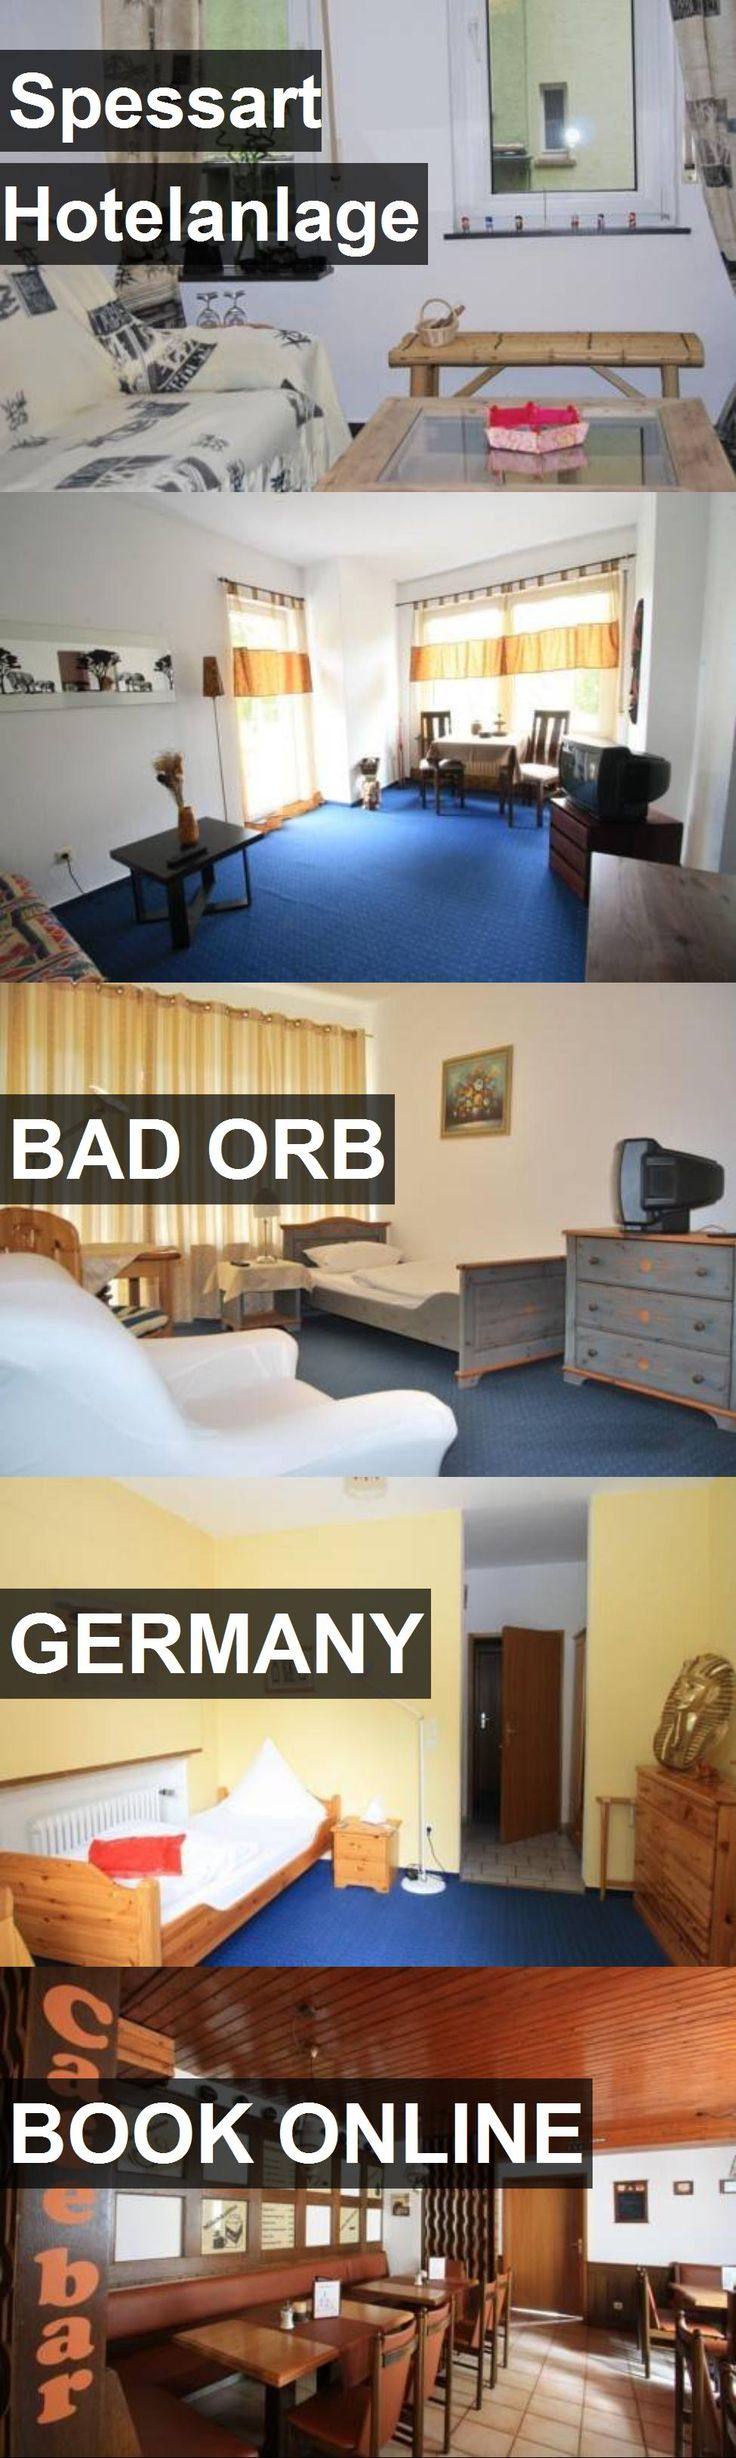 Spessart Hotelanlage in Bad Orb, Germany. For more information, photos, reviews and best prices please follow the link. #Germany #BadOrb #travel #vacation #hotel